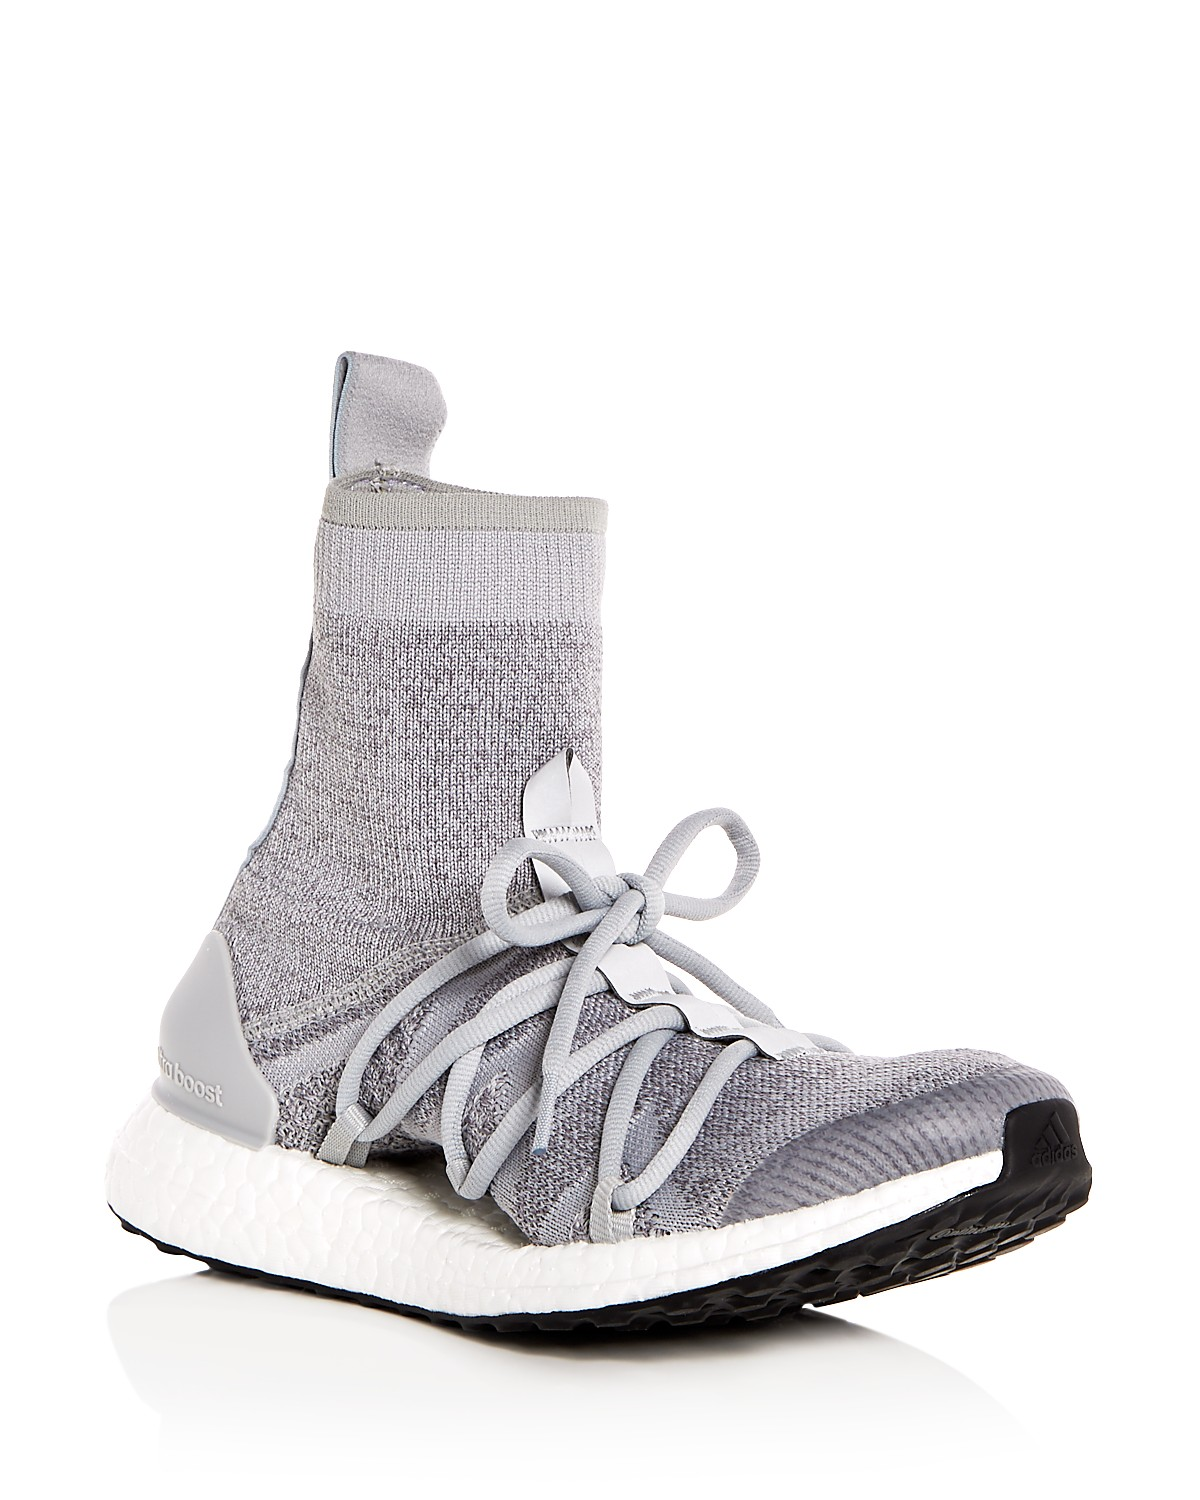 Stella McCartney for Adidas Knit High-Top Sneakers latest collections for sale clearance websites 8T8dp